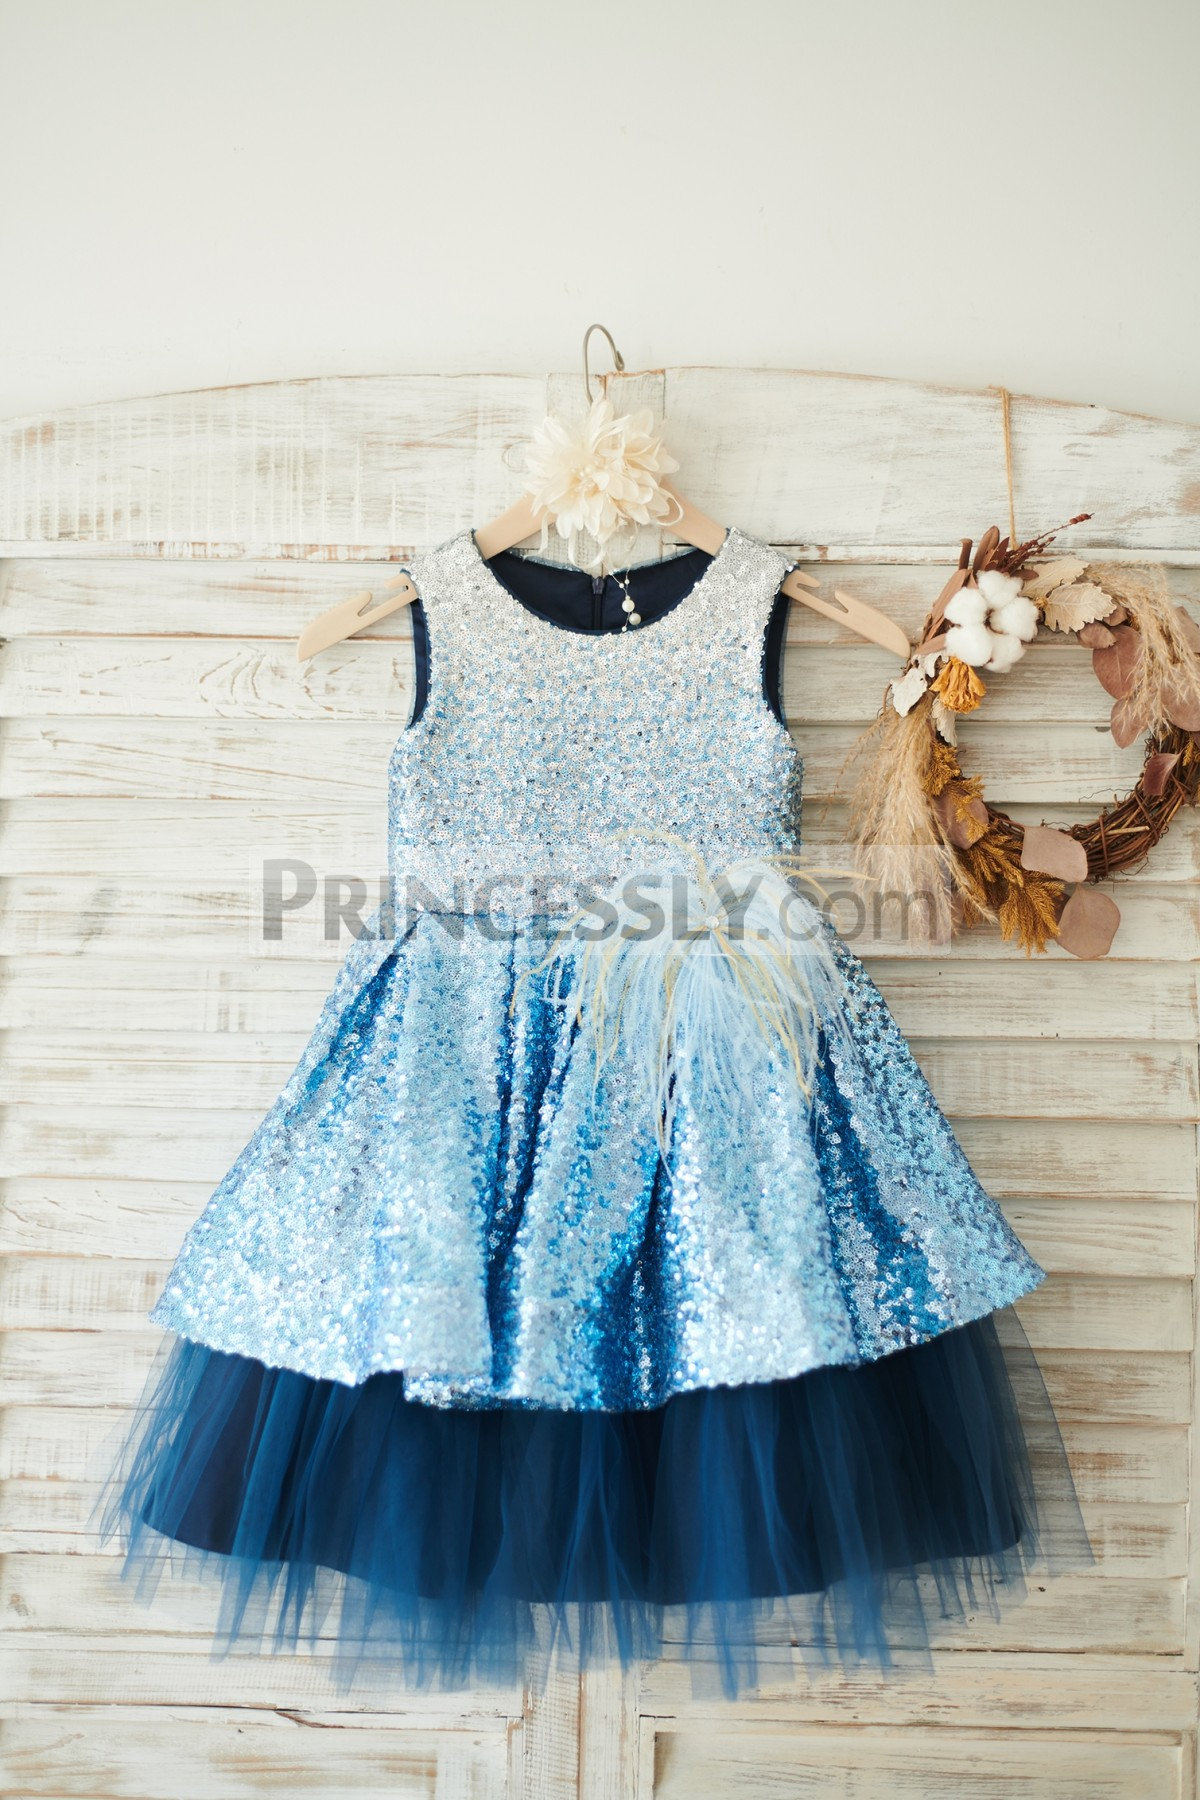 0a72896ce2 Shine Ombre Sequin Overlay Navy Blue Tulle Satin Party Flowergirl ...